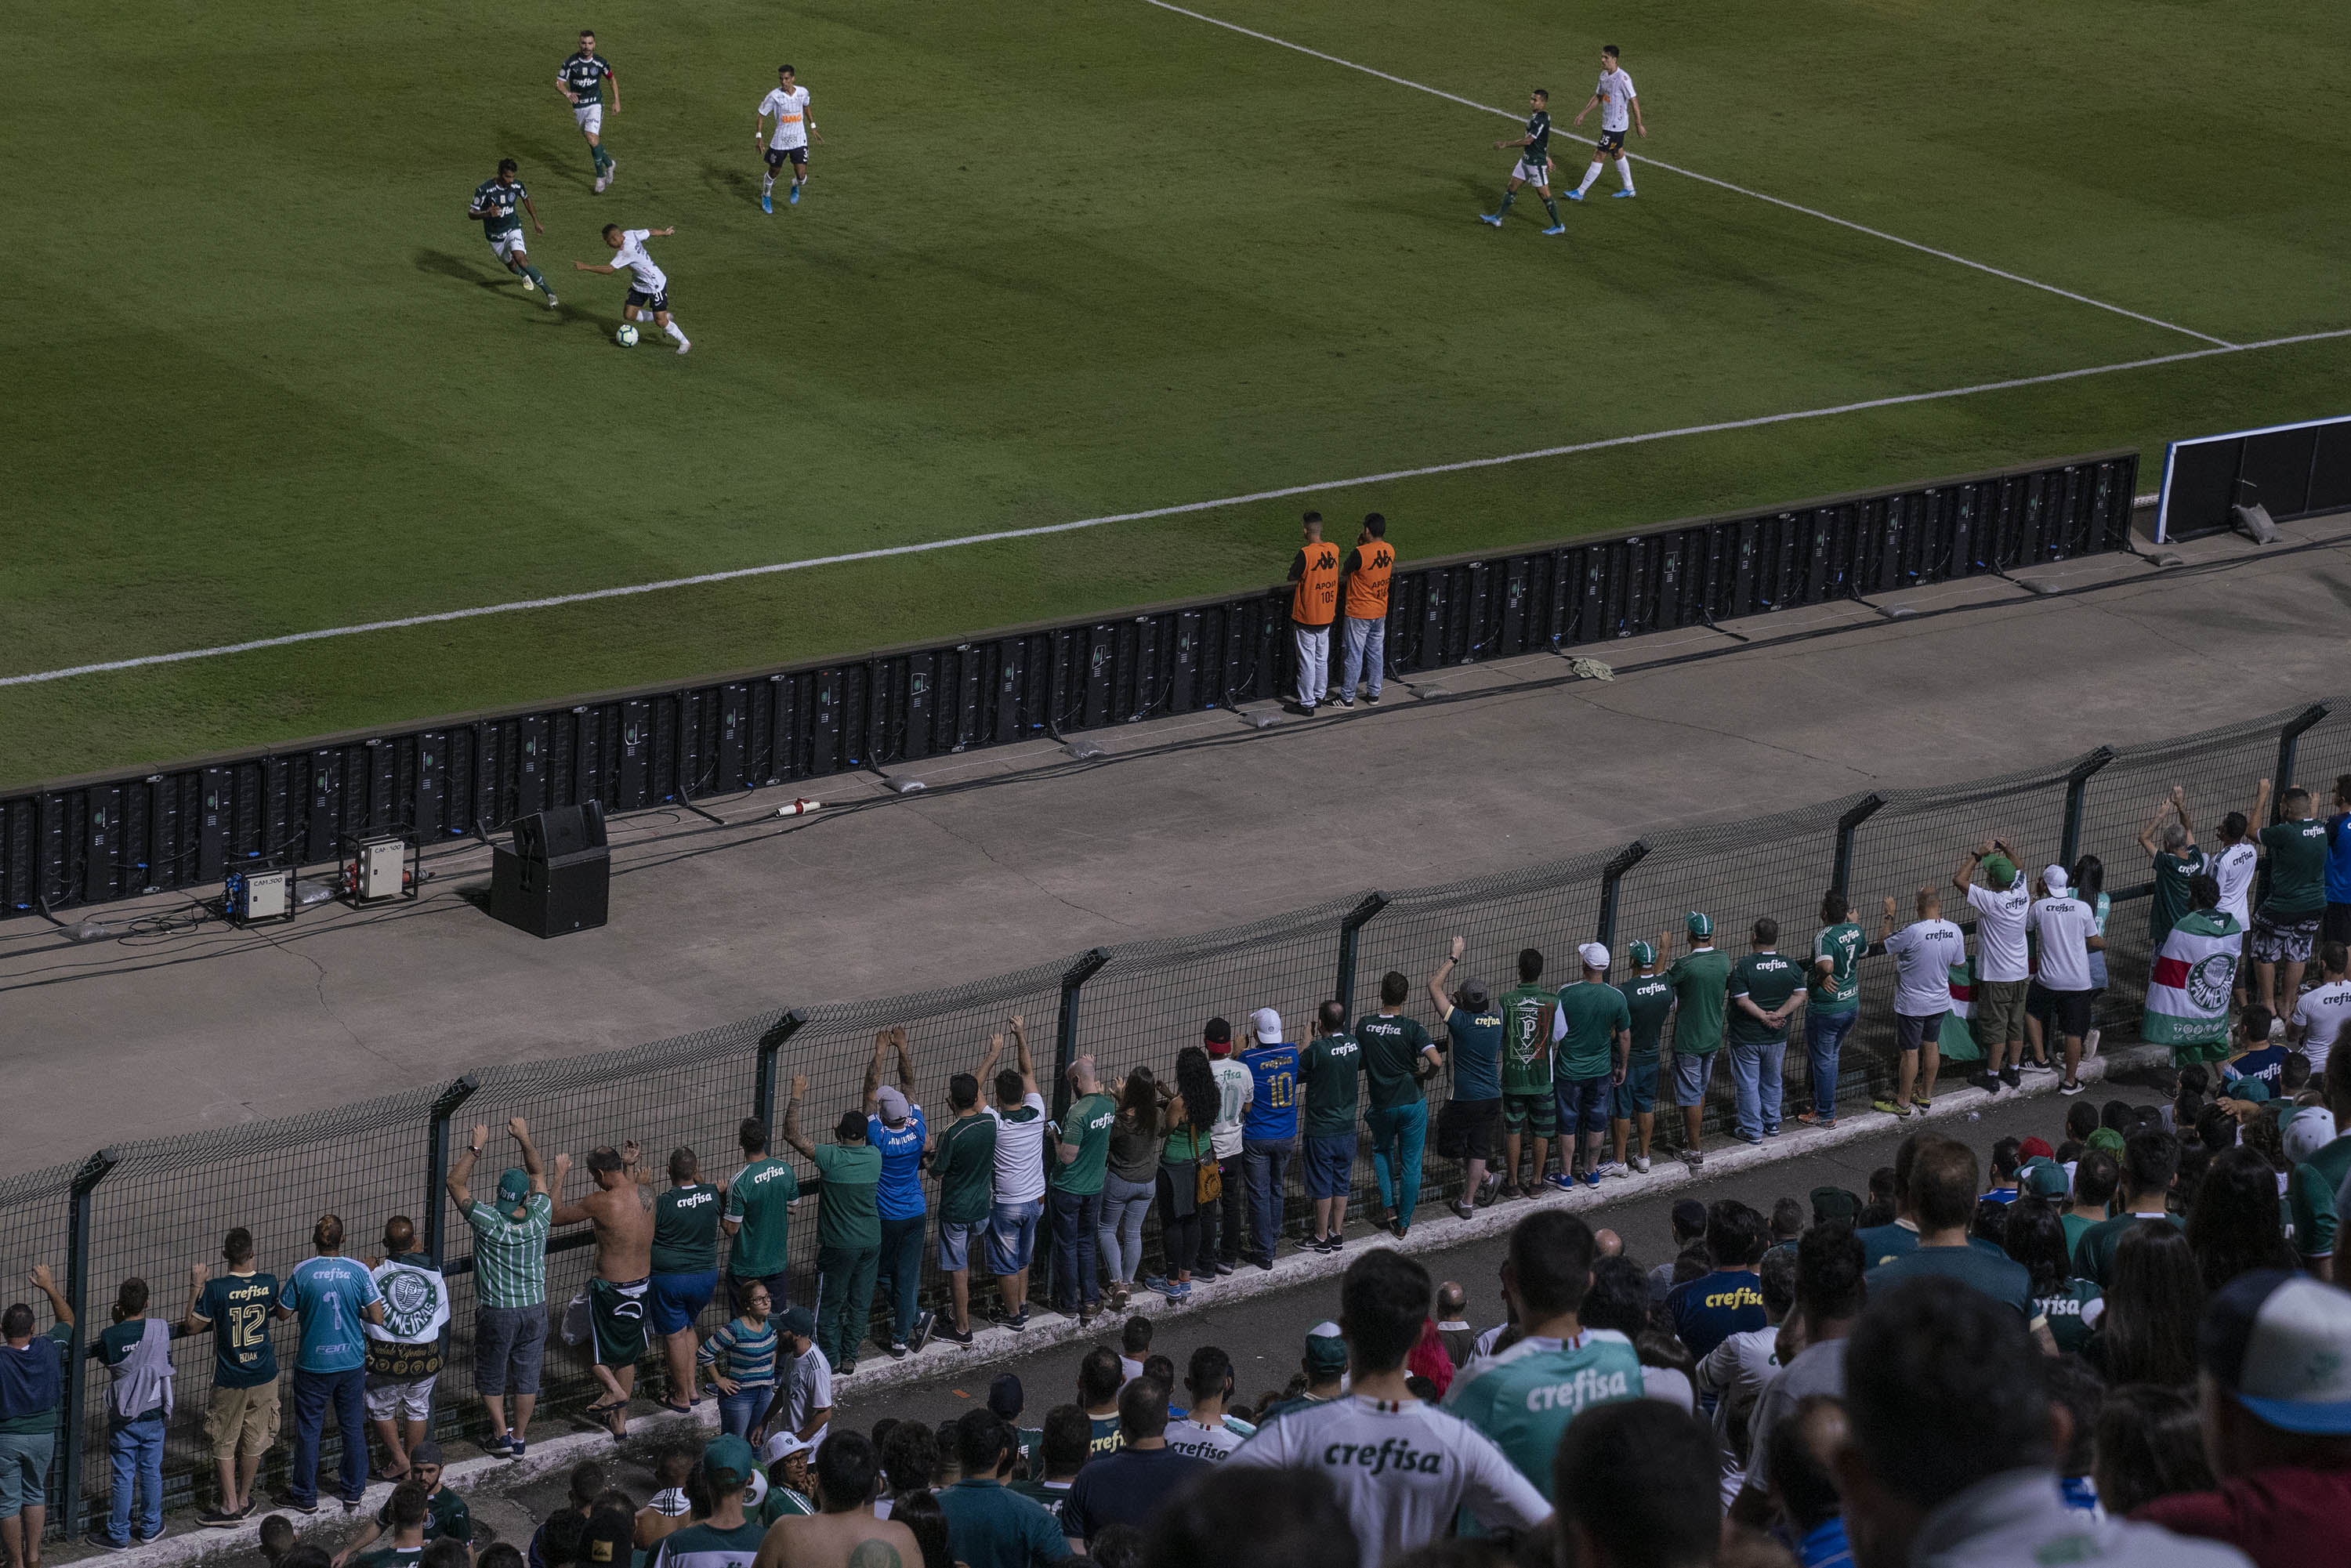 10 November 2019: The recent Paulista Derby between São Paulo rivals Palmeiras and  Corinthians at the Estadio Municipal stadium. (Photograph by Ihsaan Haffejee)